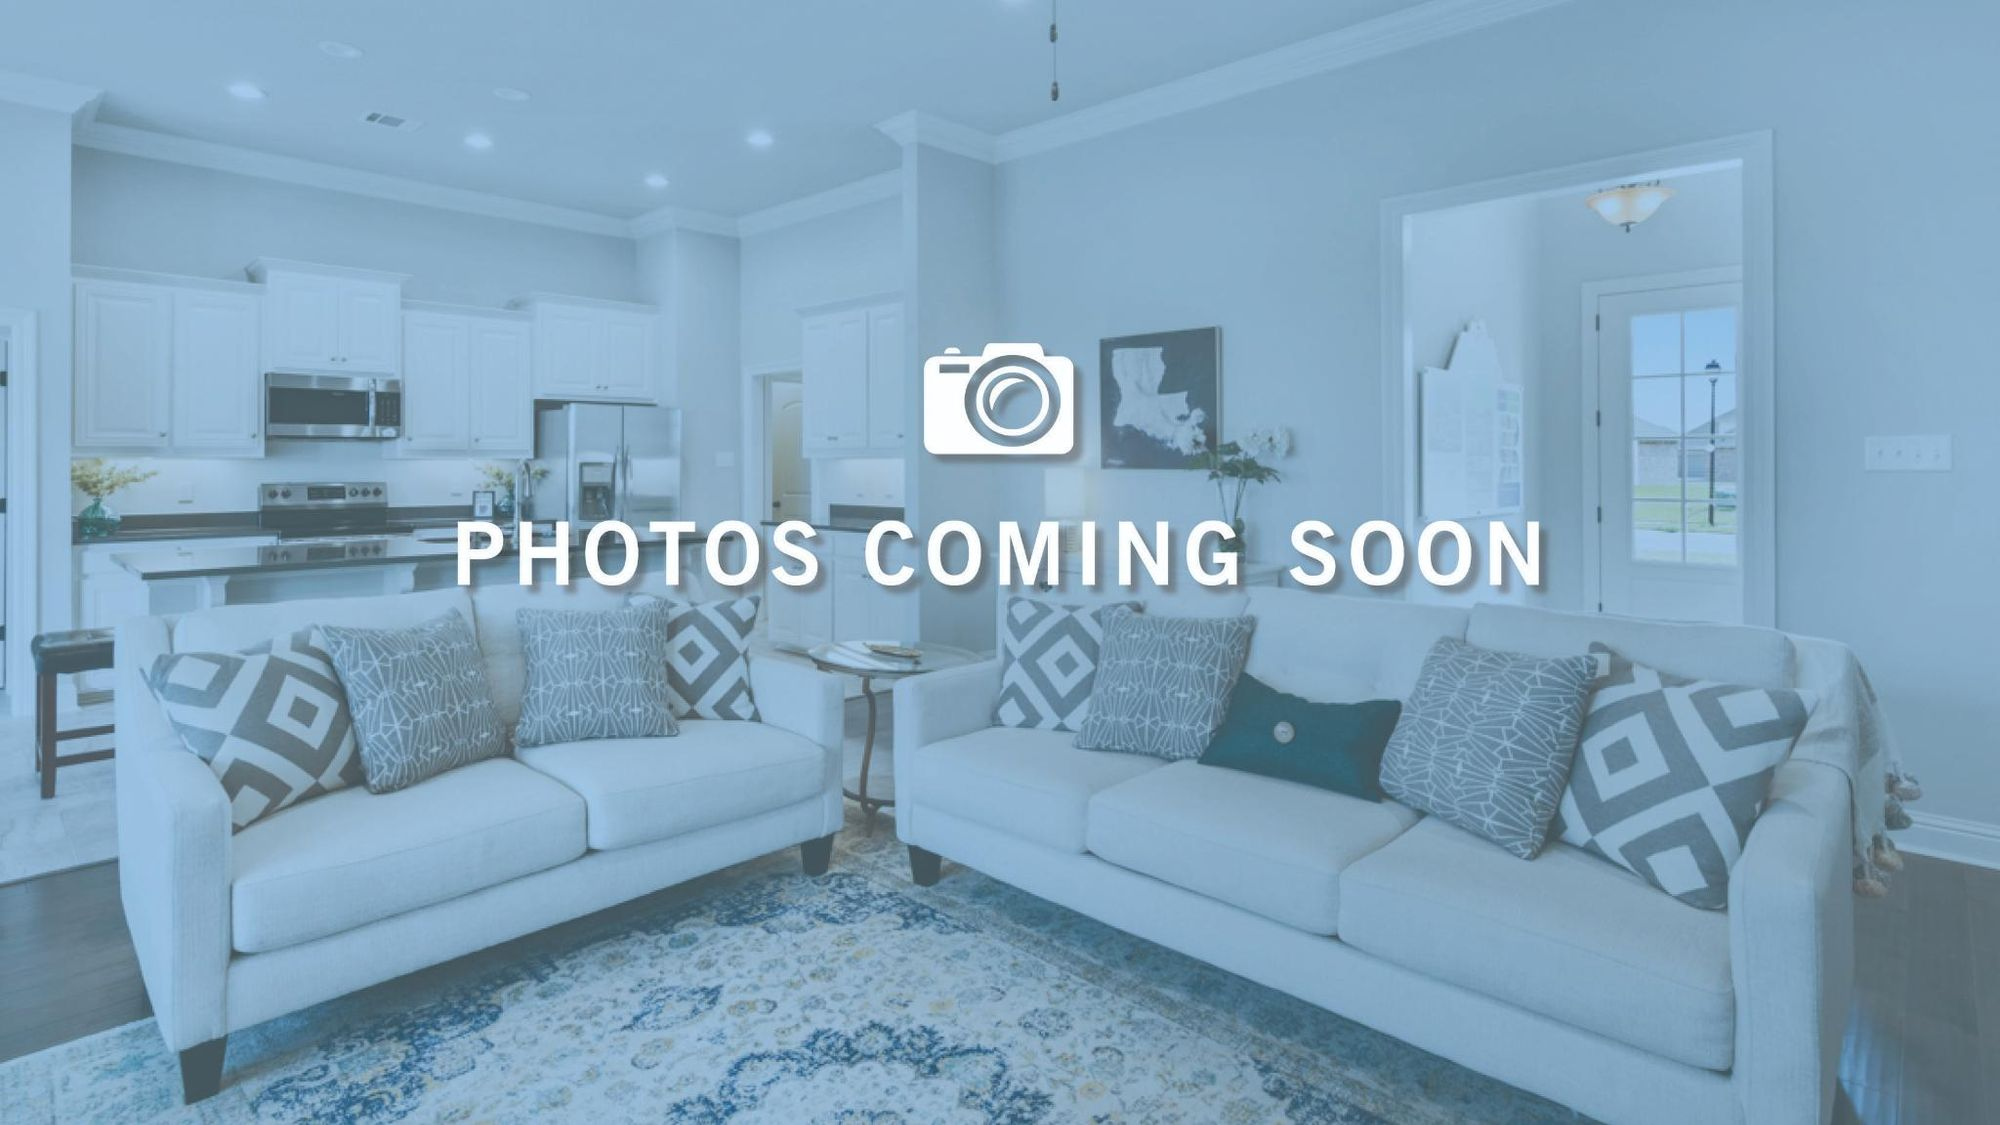 DSLD Homes - Gonzales, LA - Camellia Cove Photos Coming Soon